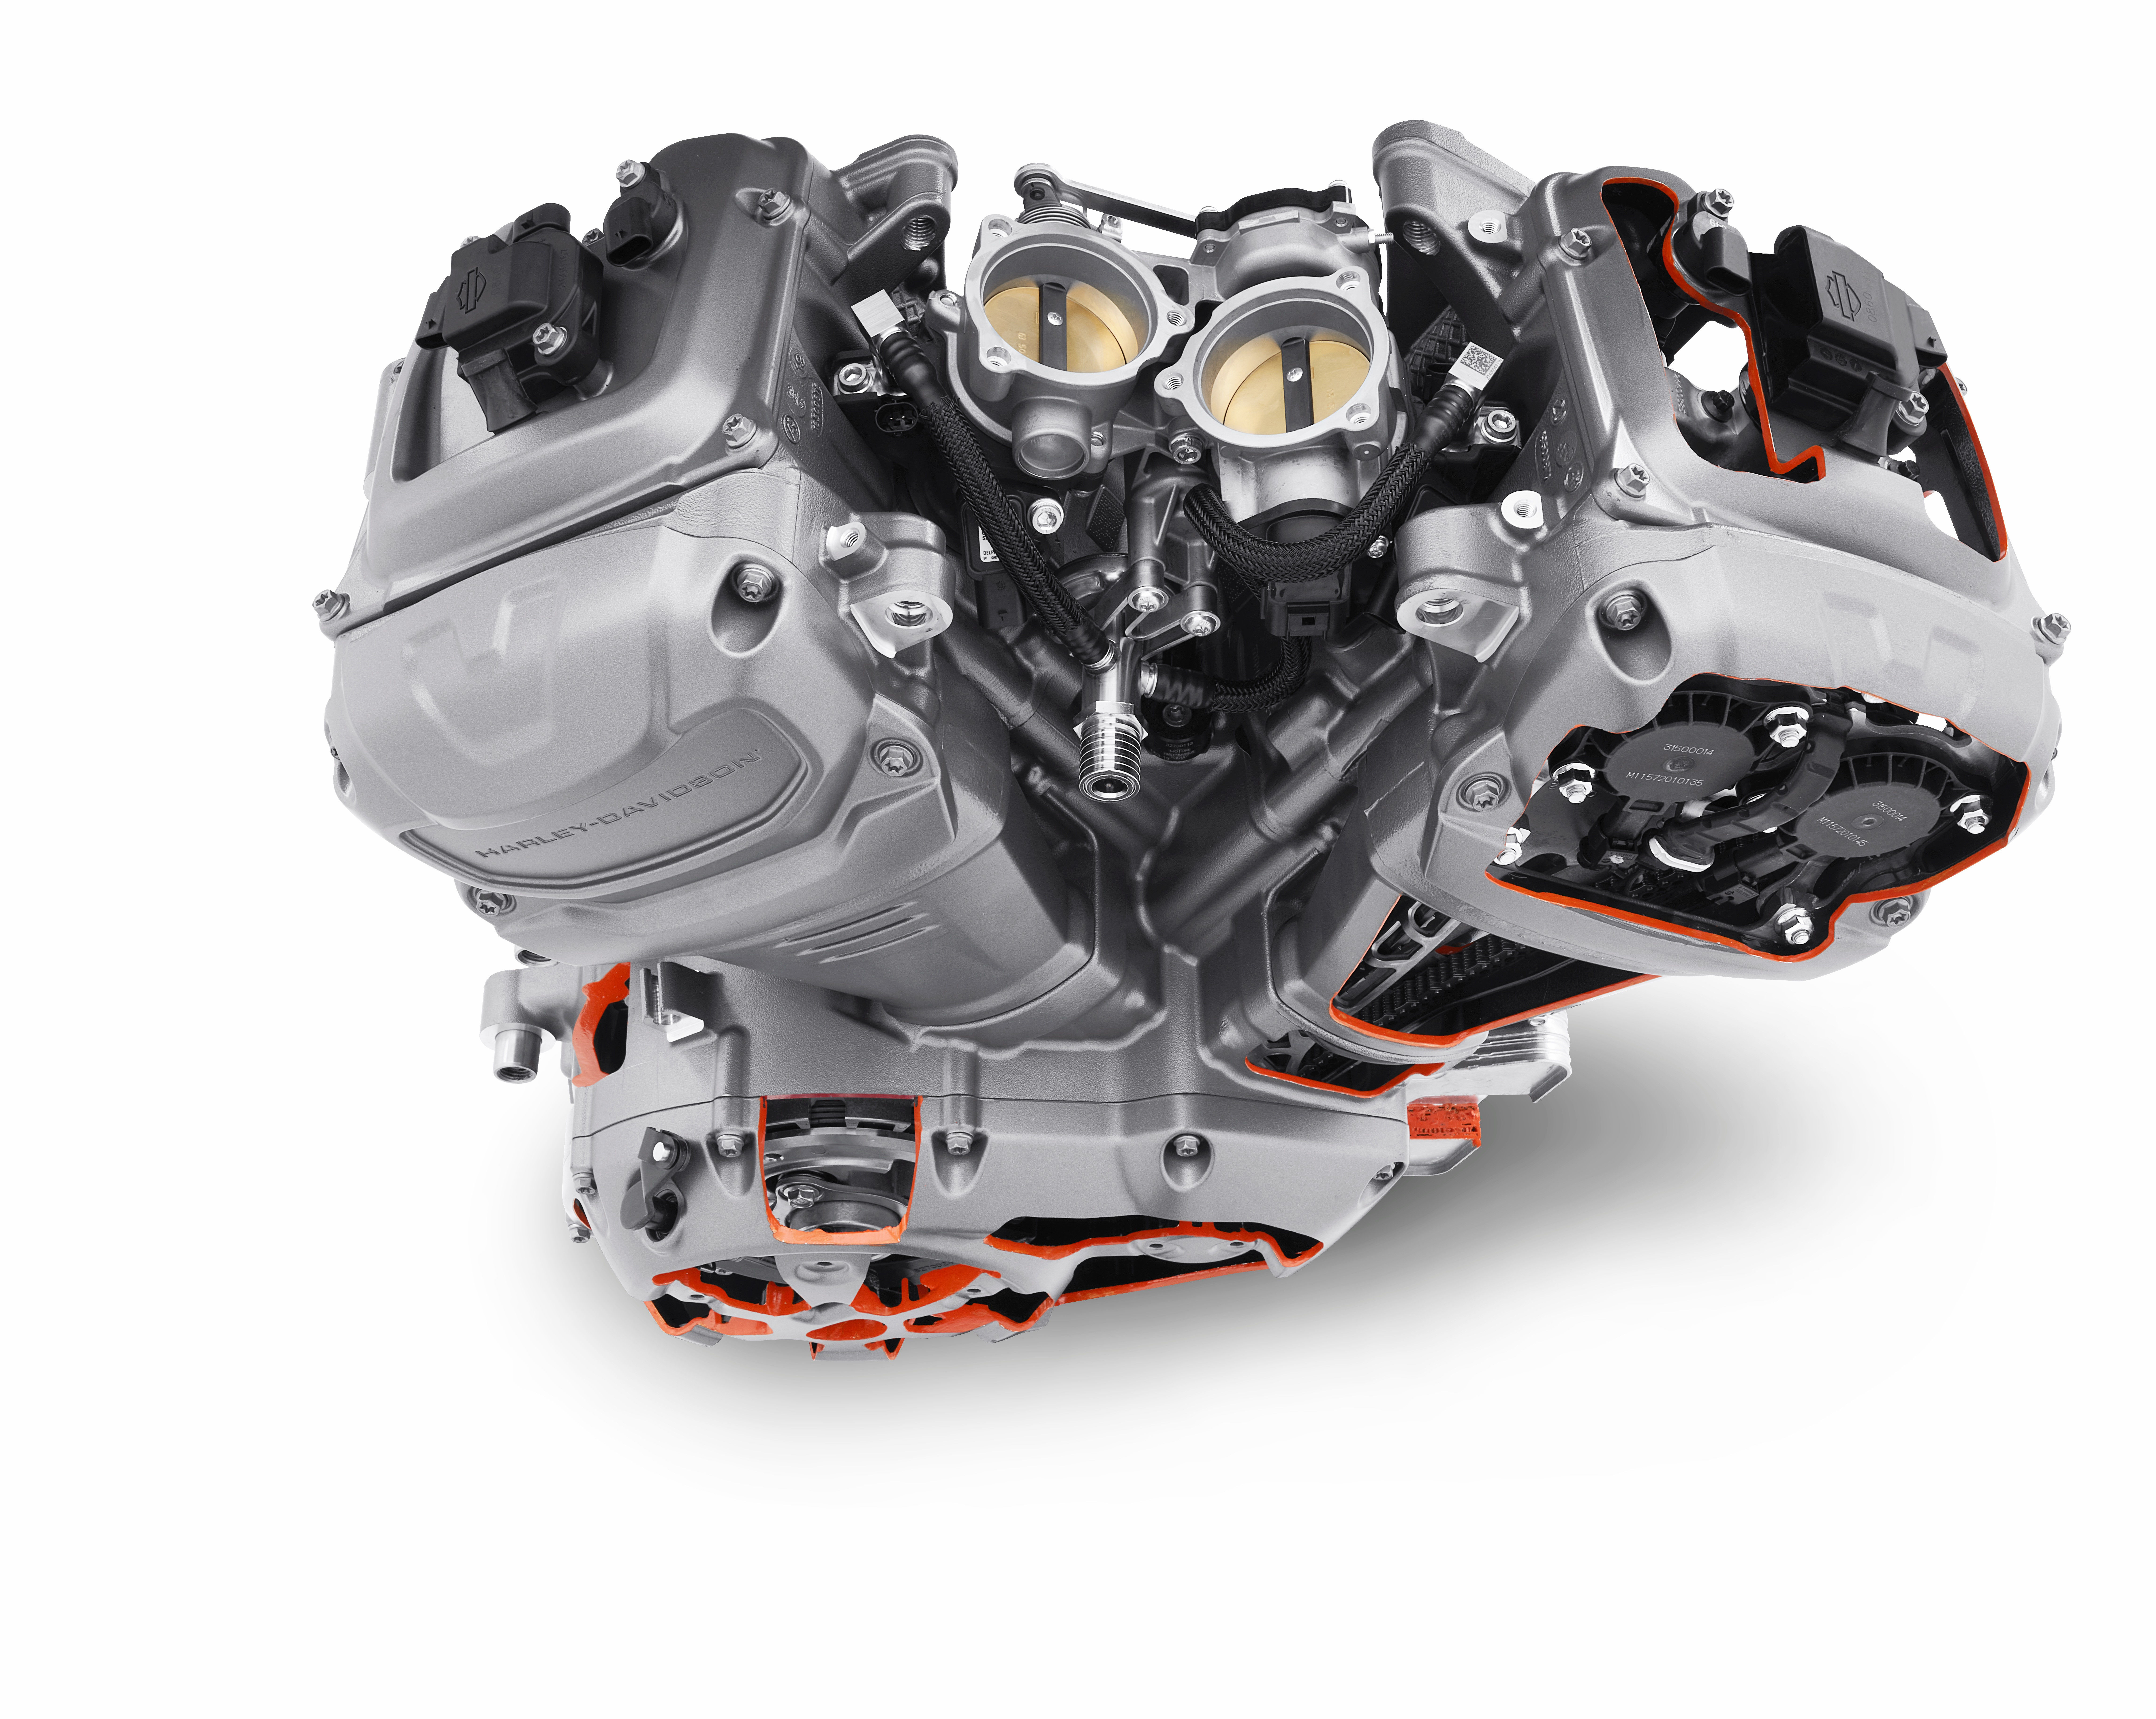 Another view of Harley-Davidson's new Revolution Max 1250 V-Twin engine with sections cut away to display the internal parts. Photo courtesy Harley-Davidson.